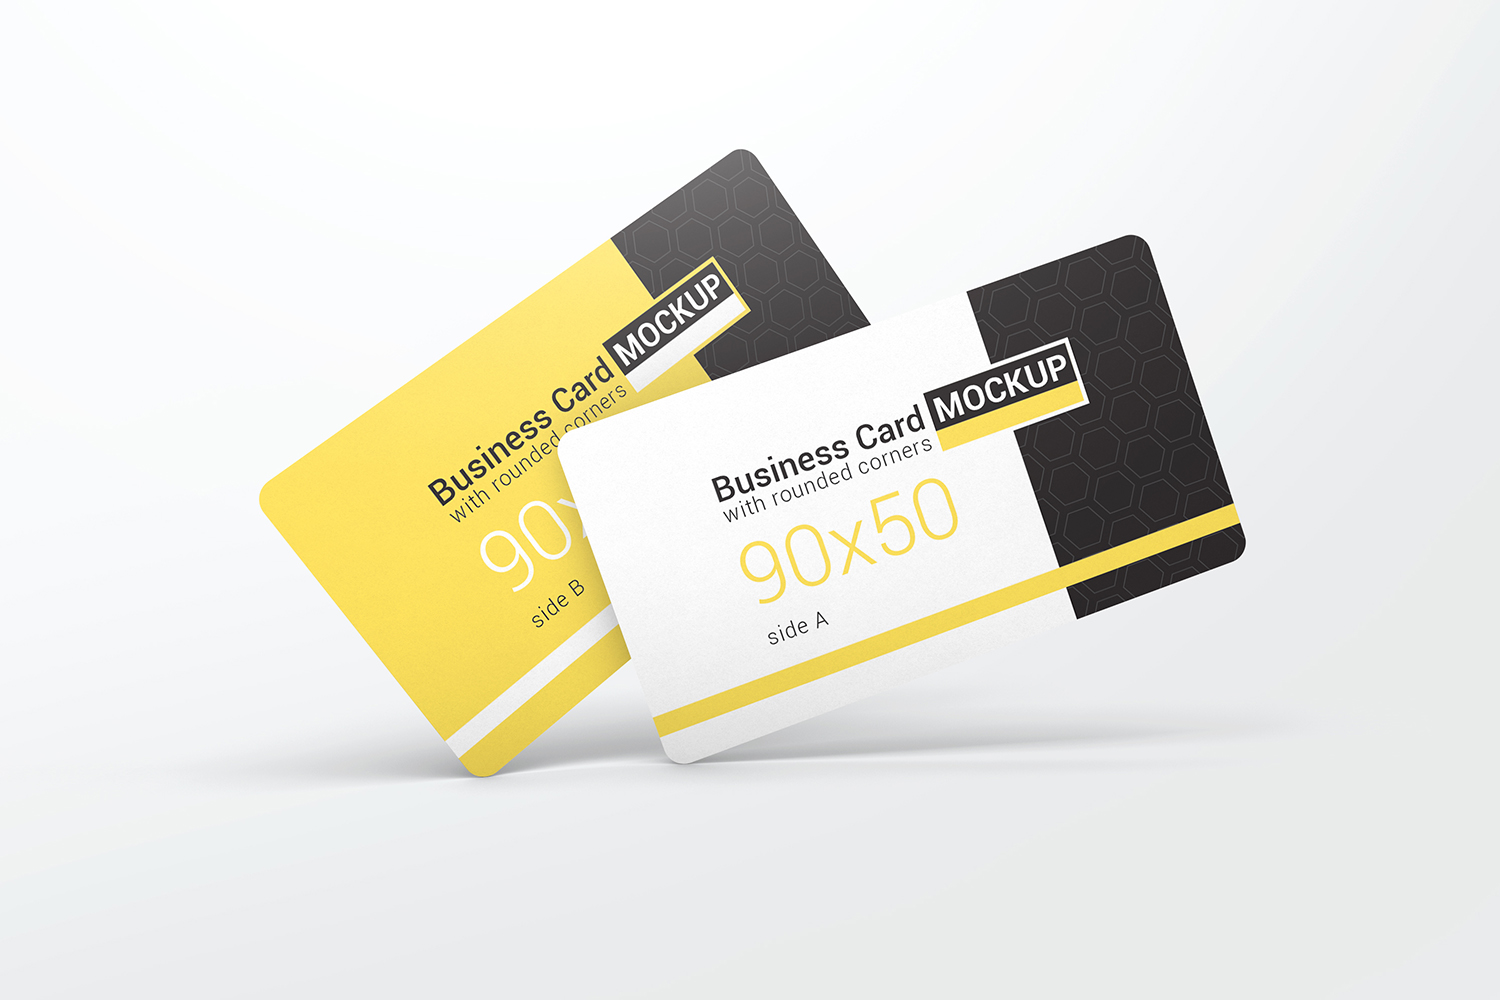 Business Card With Rounded Corners Mockups example image 6